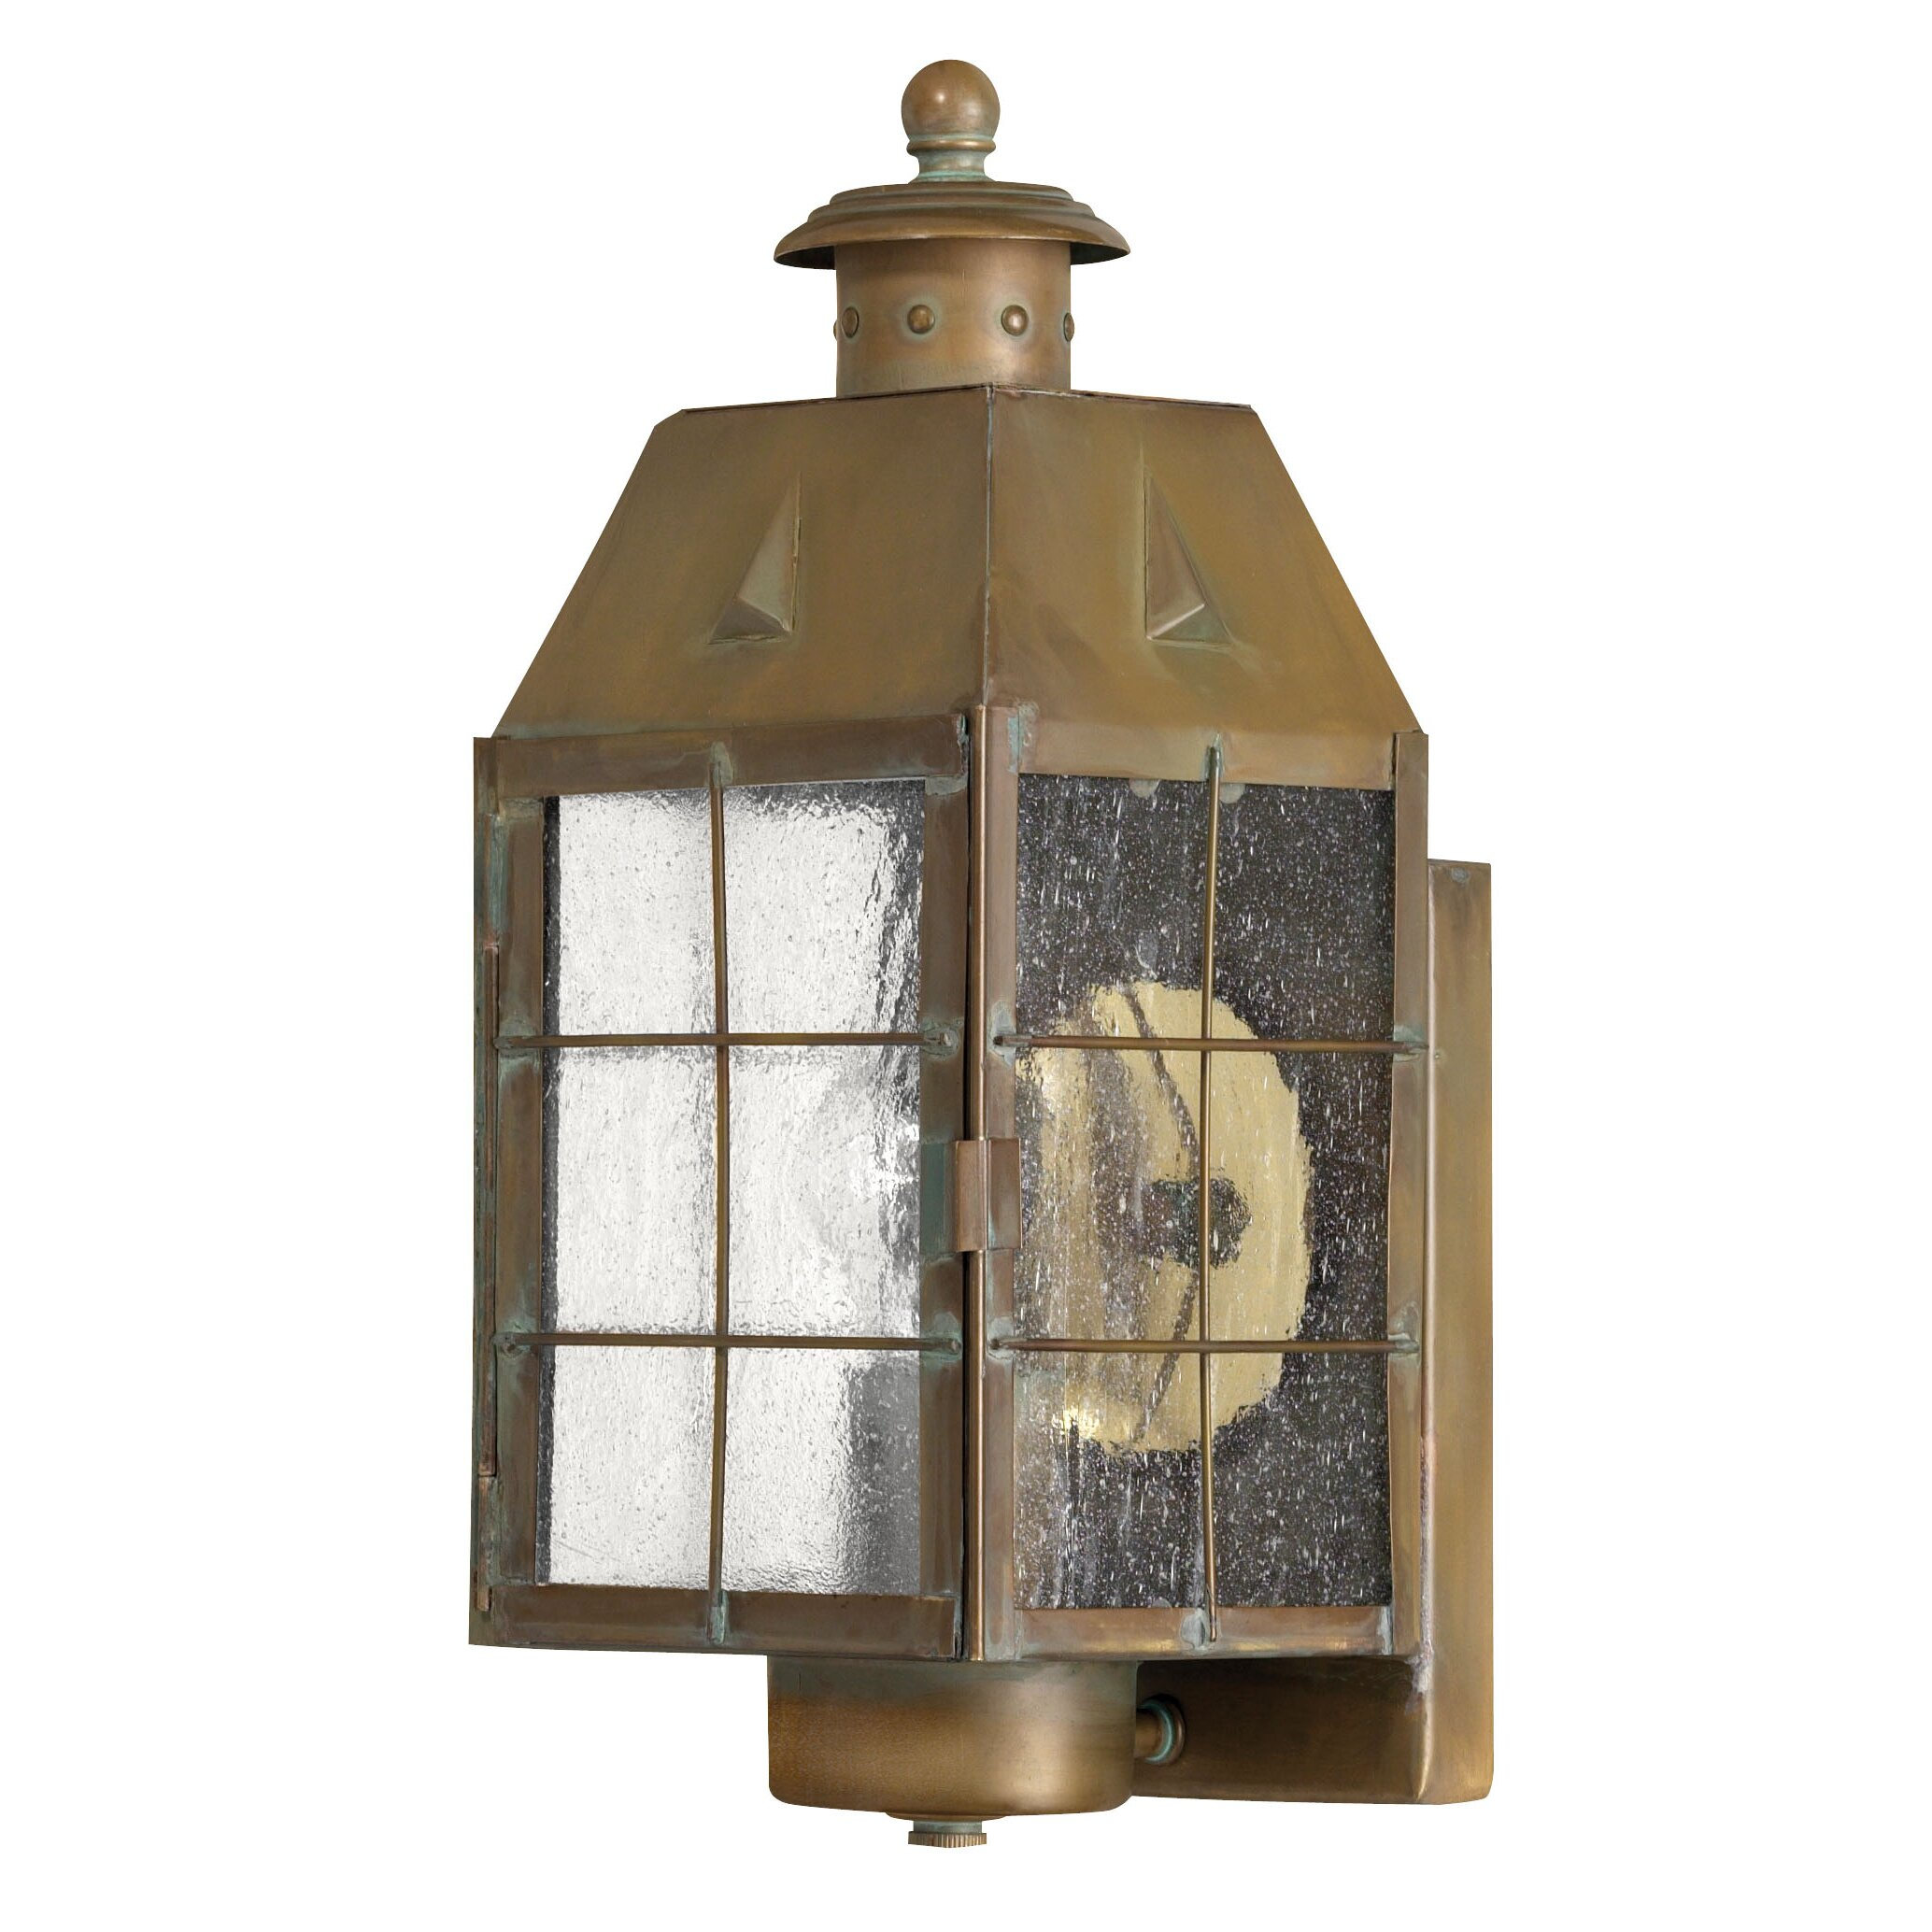 Wayfair Outdoor Wall Lights : Hinkley Lighting Nantucket 1 Light Outdoor Wall Lantern & Reviews Wayfair